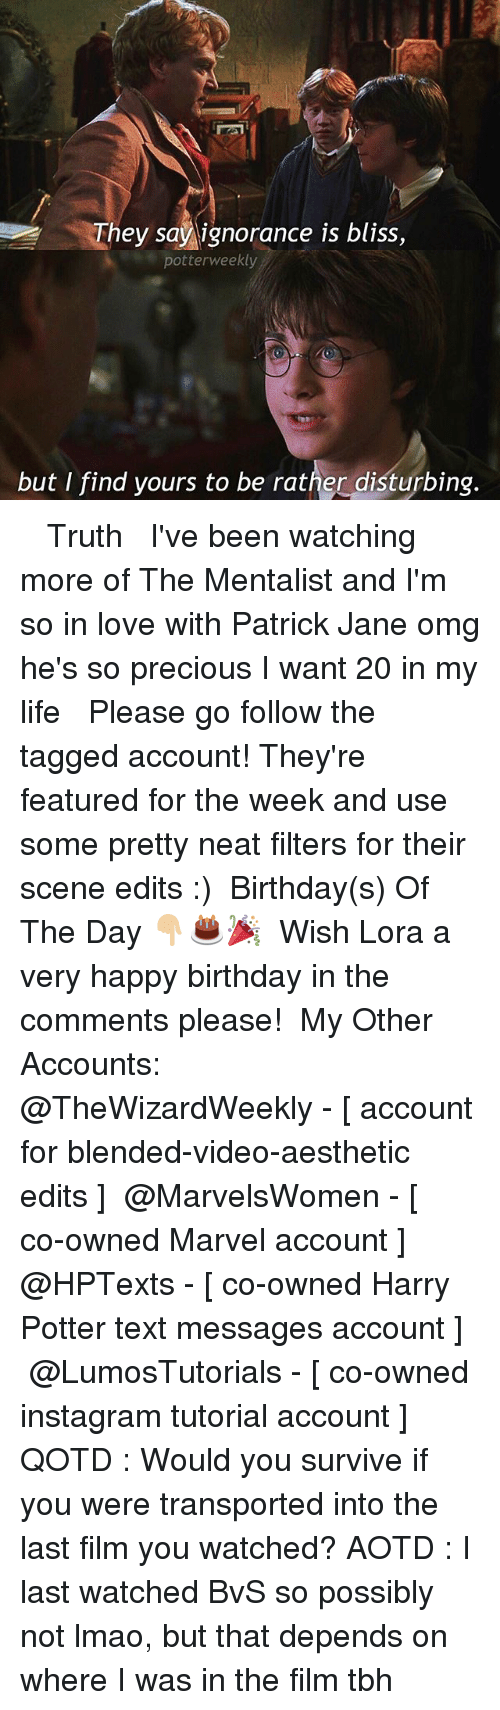 Birthday, Harry Potter, and Instagram: They say ignorance is bliss,  potter weekly  but I find yours to be rather disturbing. ✎✐✎ ↯ ⇢ Truth ↯ ⇢ I've been watching more of The Mentalist and I'm so in love with Patrick Jane omg he's so precious I want 20 in my life ↯ ⇢ Please go follow the tagged account! They're featured for the week and use some pretty neat filters for their scene edits :) ✎✐✎ Birthday(s) Of The Day 👇🏼🎂🎉 ⇢ Wish Lora a very happy birthday in the comments please! ✎✐✎ My Other Accounts: ⇢ @TheWizardWeekly - [ account for blended-video-aesthetic edits ] ⇢ @MarvelsWomen - [ co-owned Marvel account ] ⇢ @HPTexts - [ co-owned Harry Potter text messages account ] ⇢ @LumosTutorials - [ co-owned instagram tutorial account ] ✎✐✎ QOTD : Would you survive if you were transported into the last film you watched? AOTD : I last watched BvS so possibly not lmao, but that depends on where I was in the film tbh